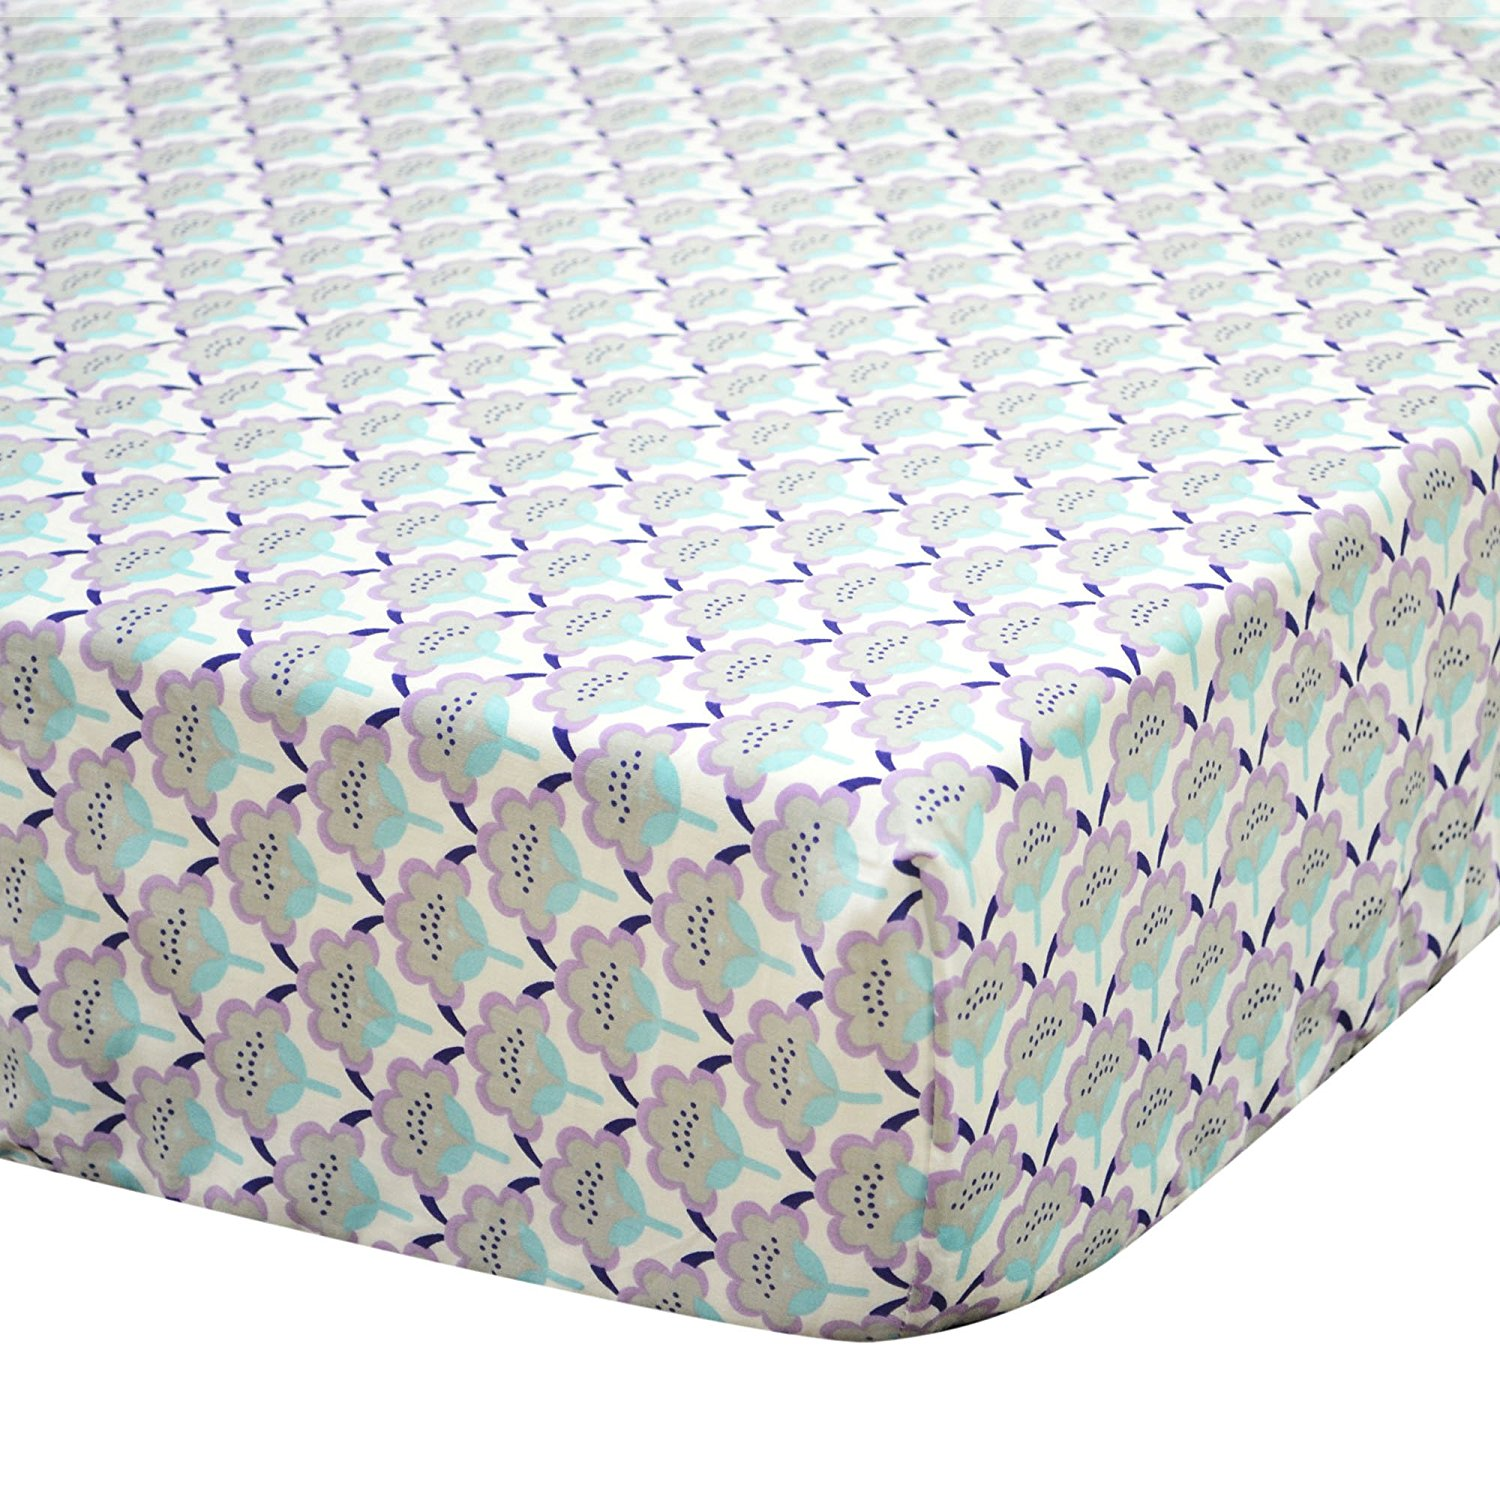 Zoe Scallop Floral Cotton Crib Fitted Sheet, Made from 100% cotton sateen fabrics; machine wash and dry By The Peanut Shell Ship from US